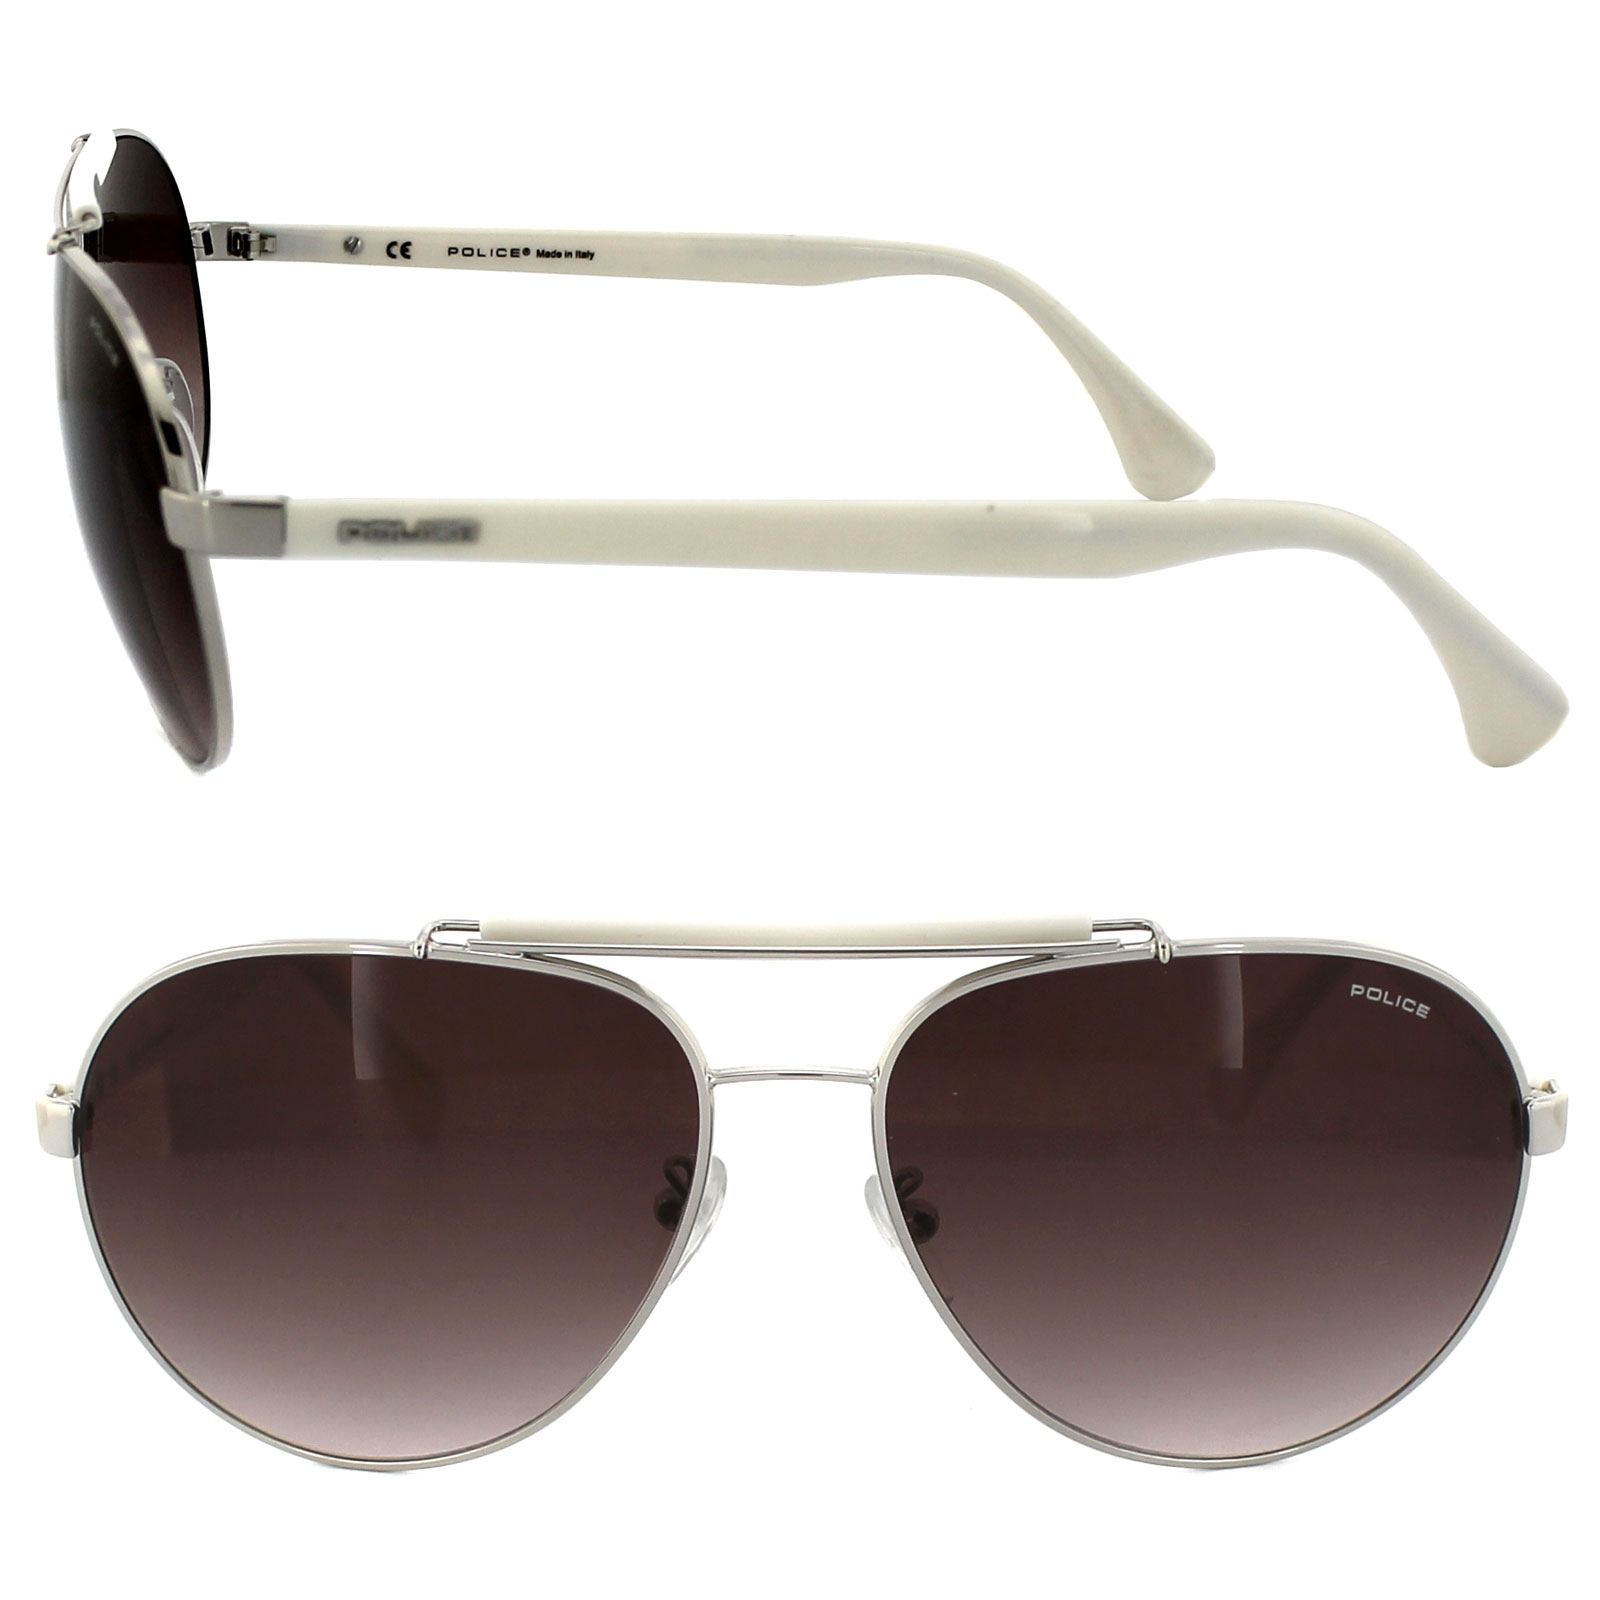 d48236771a75 Police Sunglasses 8644 579 Silver   White Brown Gradient